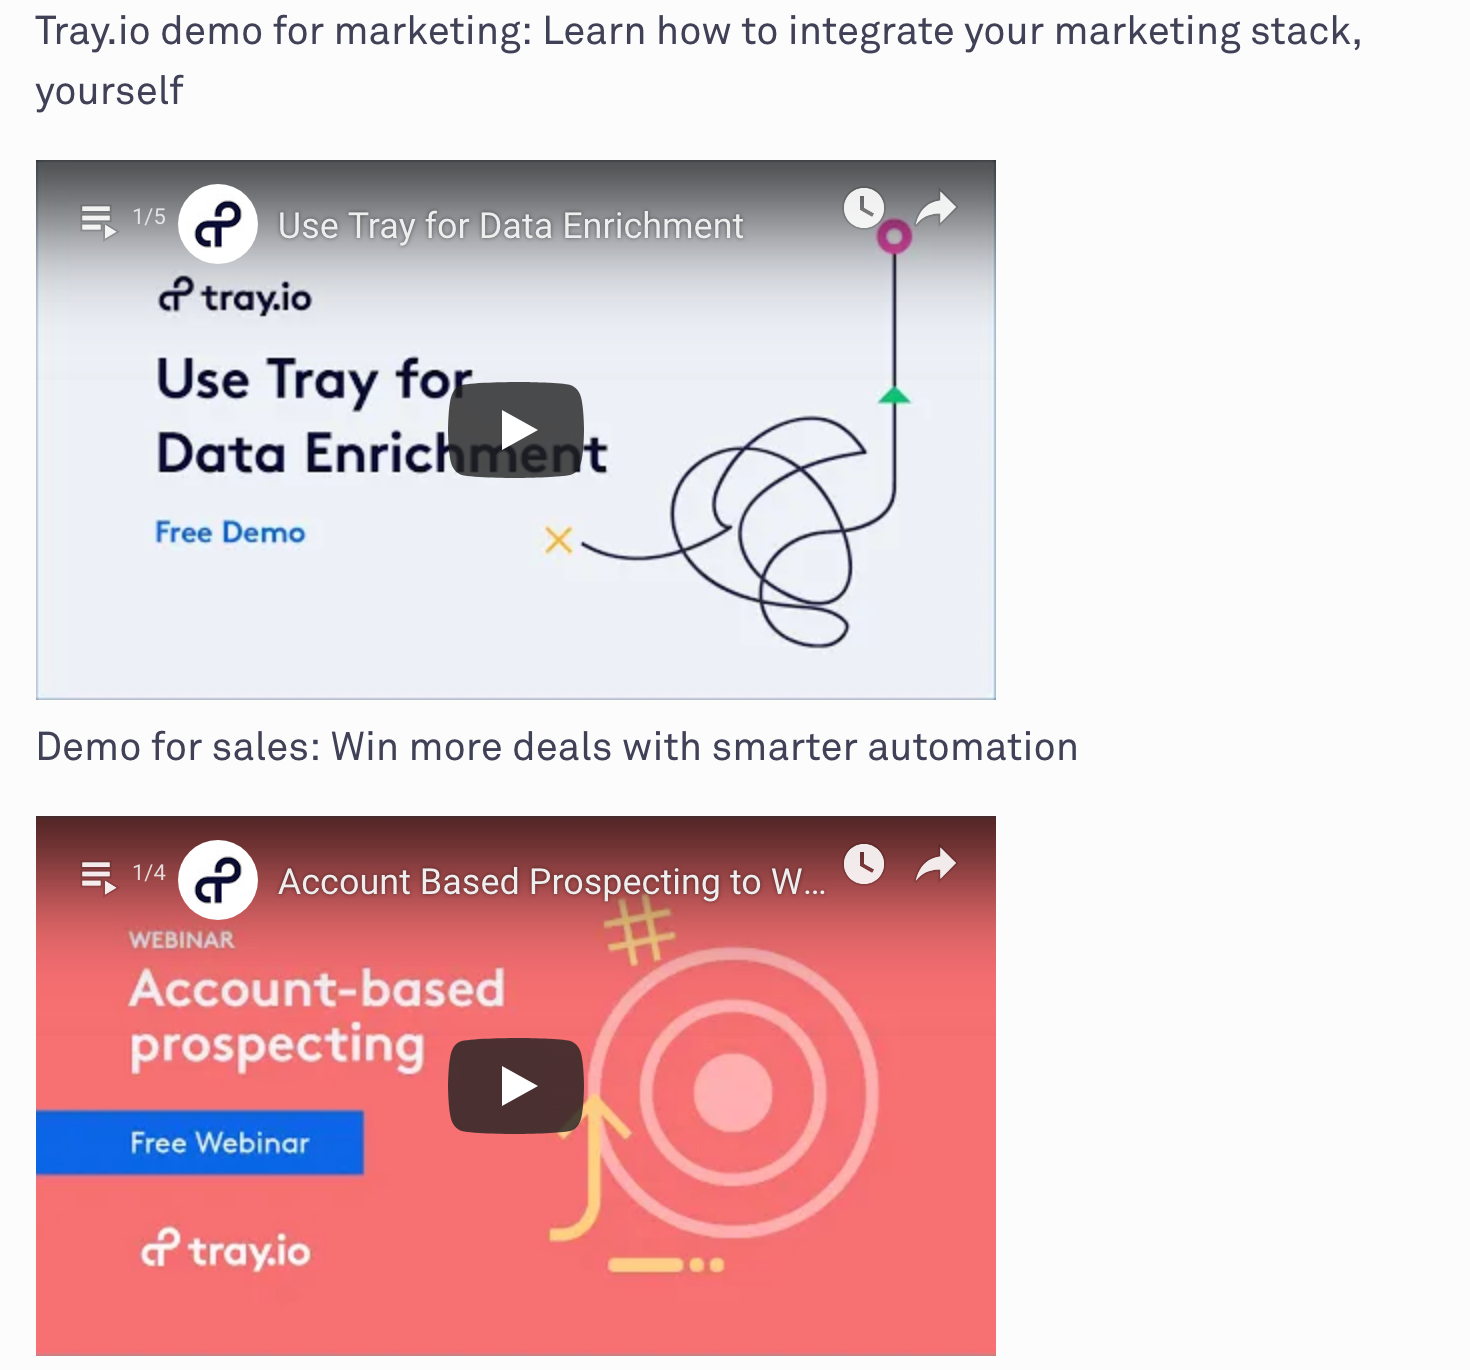 tray's walkthrough videos are part of their sales funnel.